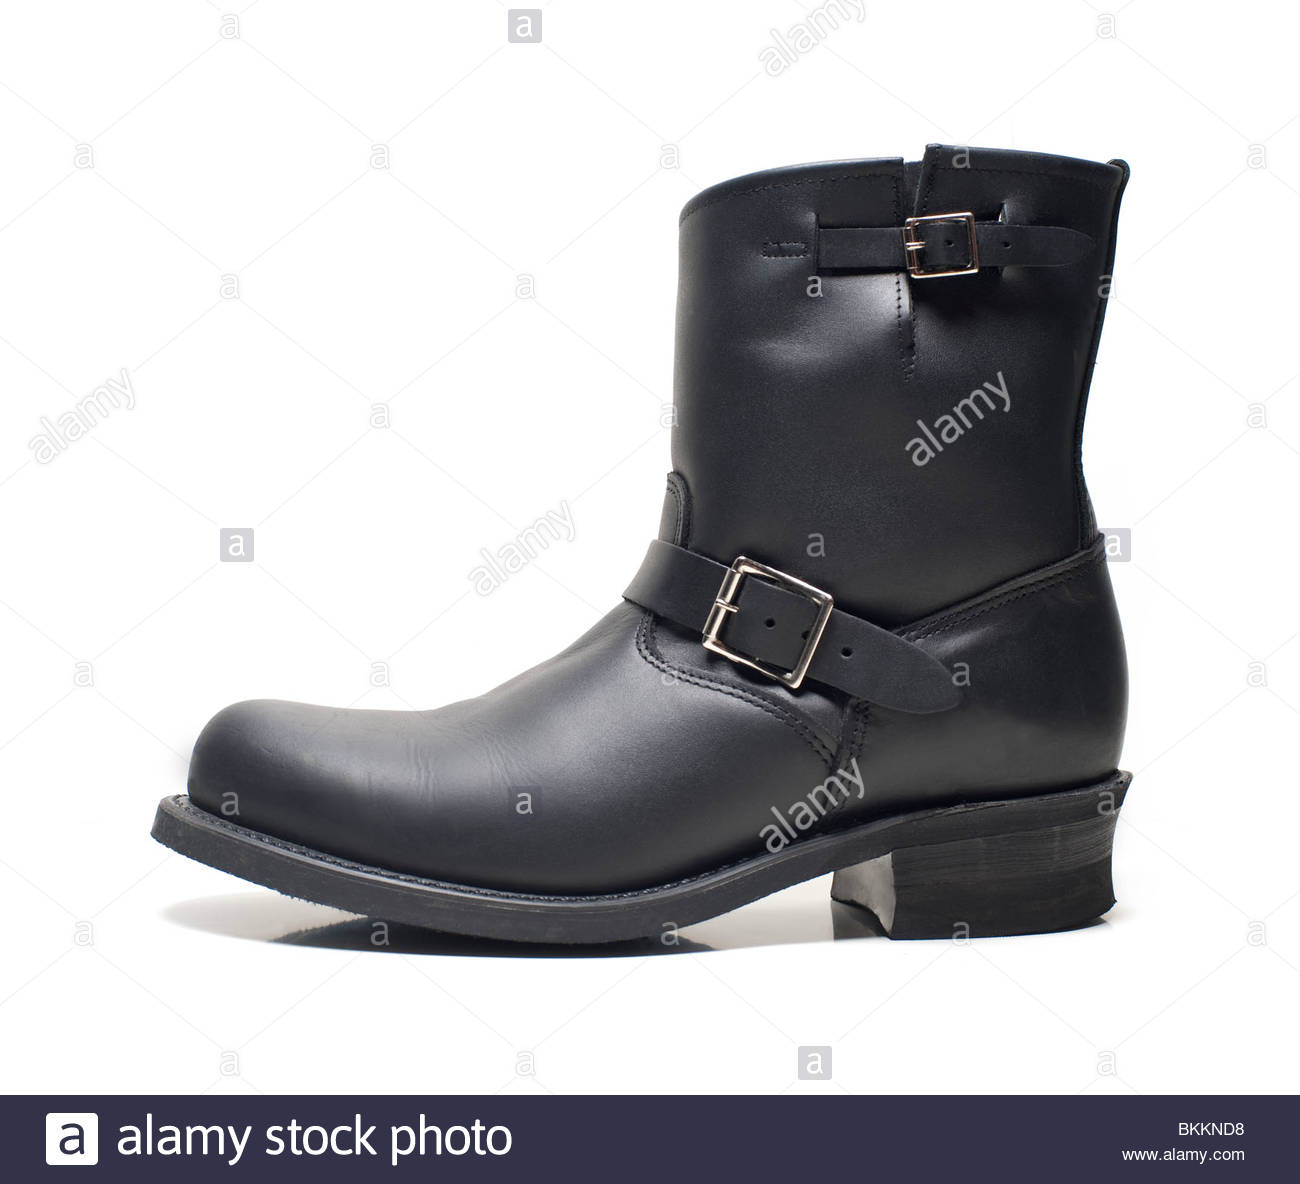 Mens Frye Engineer Boot Black leather, Boots trend fashion statement Buckle dropped out on White Background, Frye - Stock Image